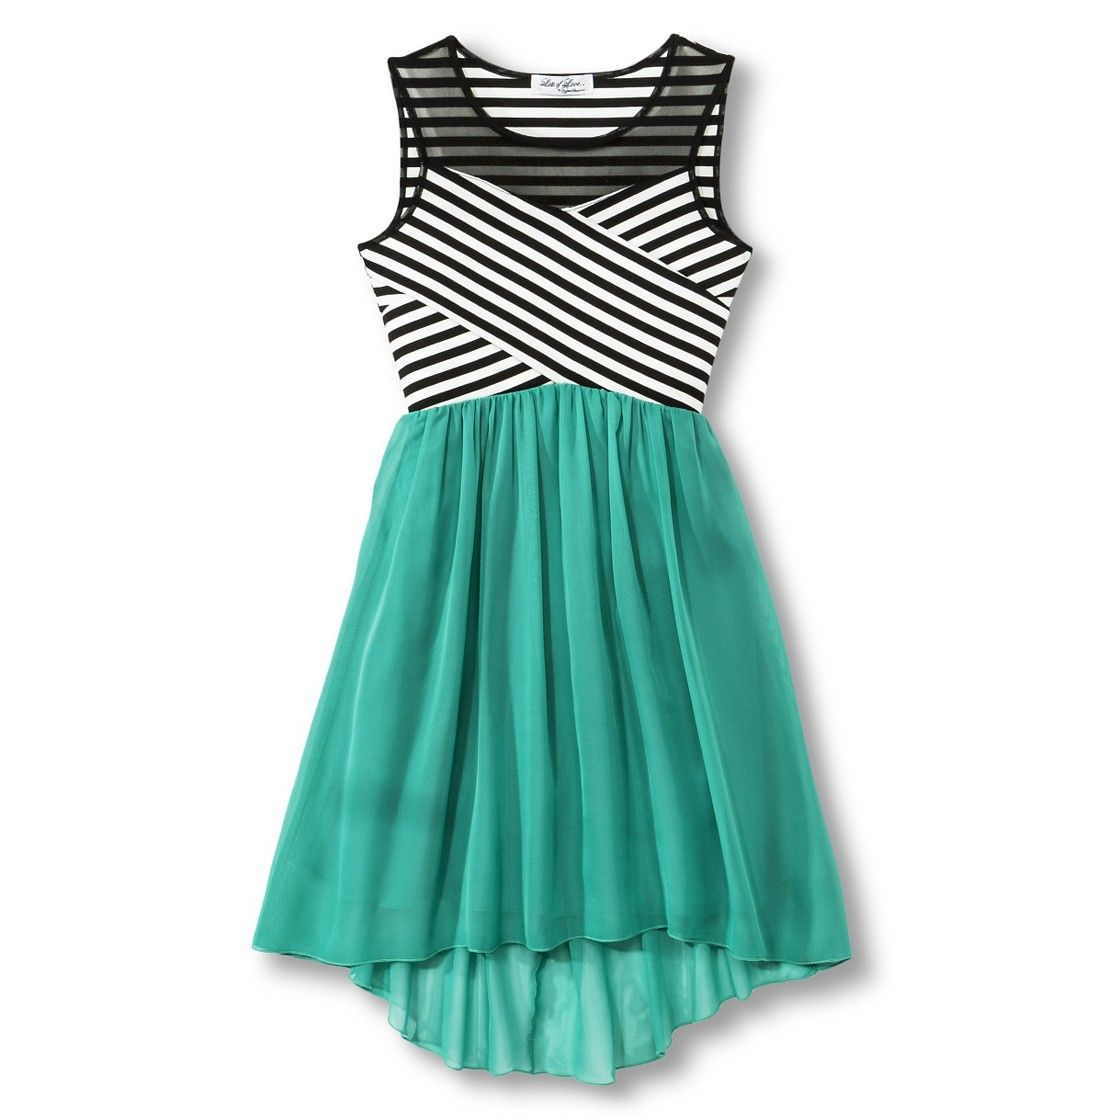 Girls\' A-Line Dress | To sew | Pinterest | Girls, Target and Clothes